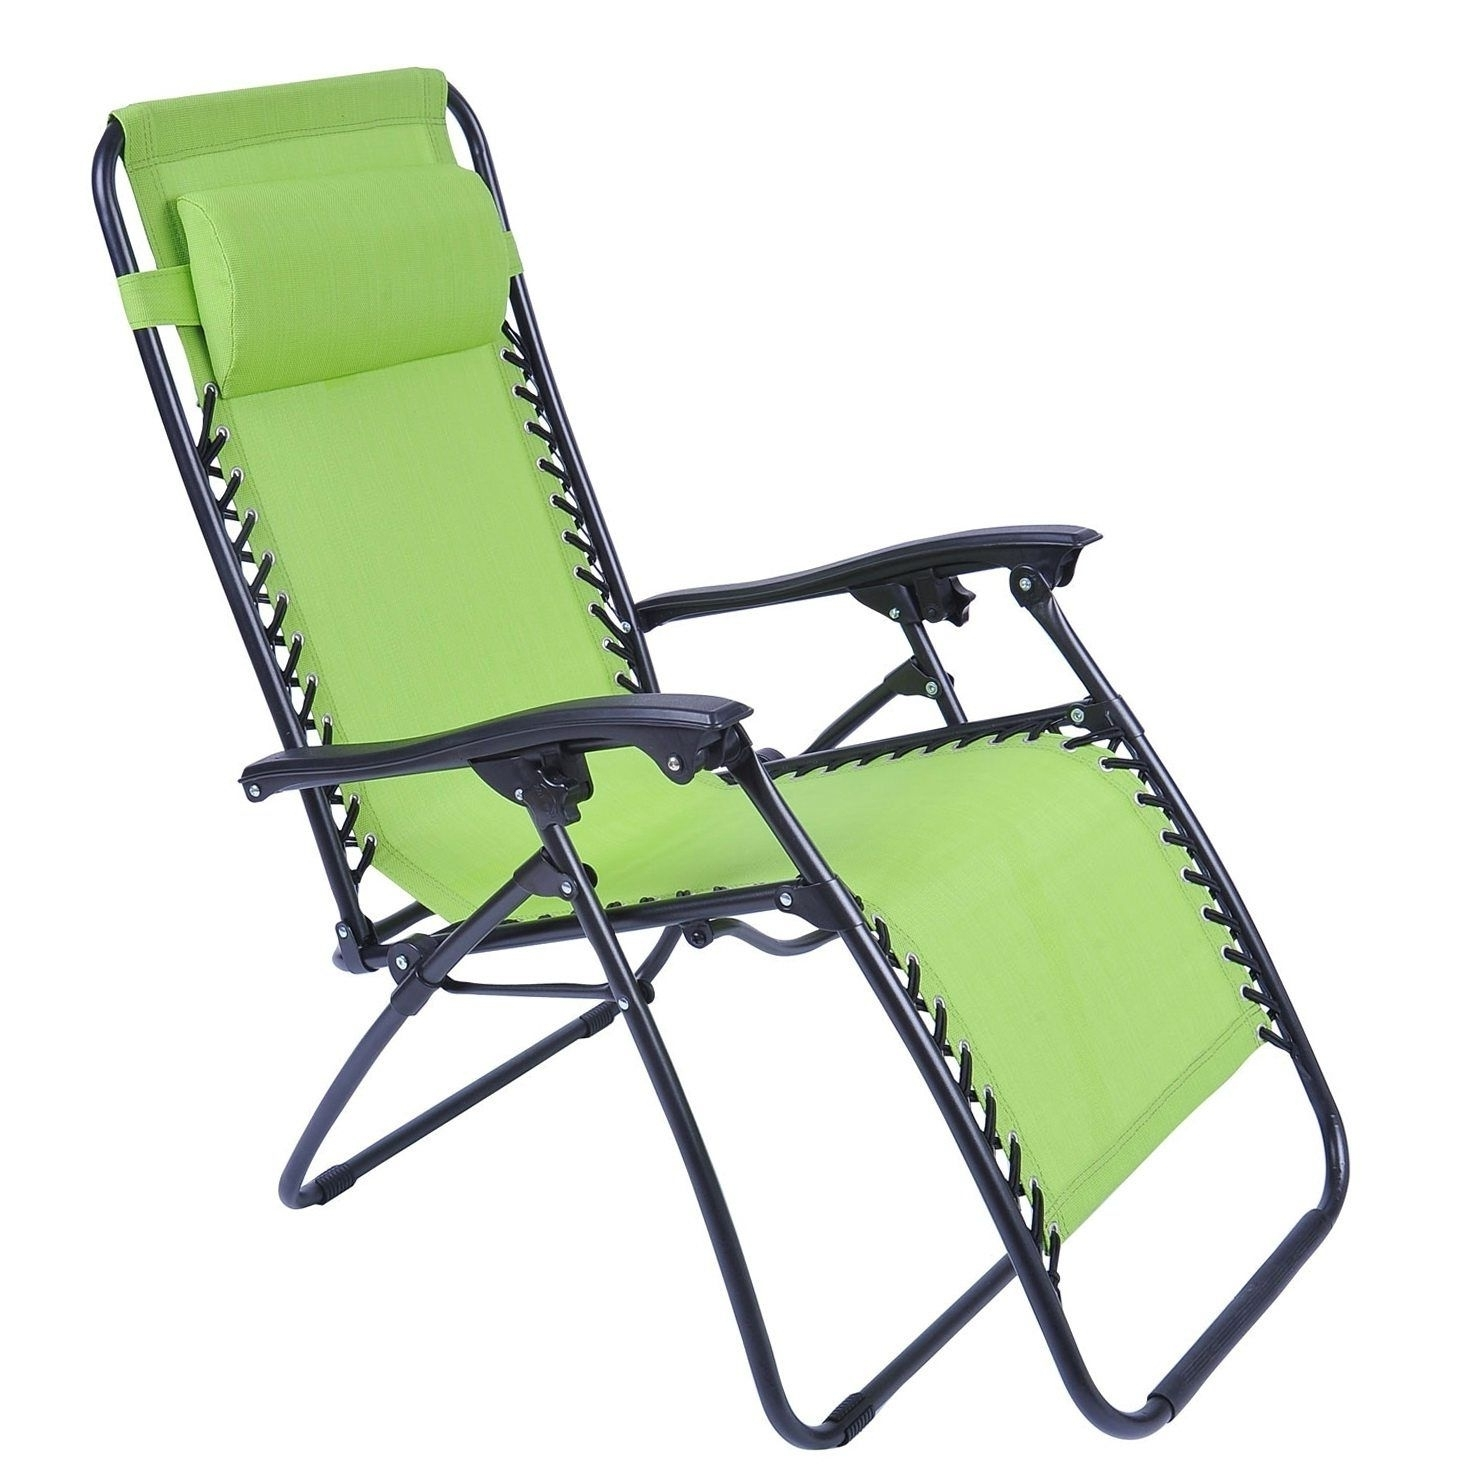 Newest Lightweight Chaise Lounge Chairs Inside Lounge Chair Outdoor Folding Folding Chaise Lounge Chair Patio (View 12 of 15)